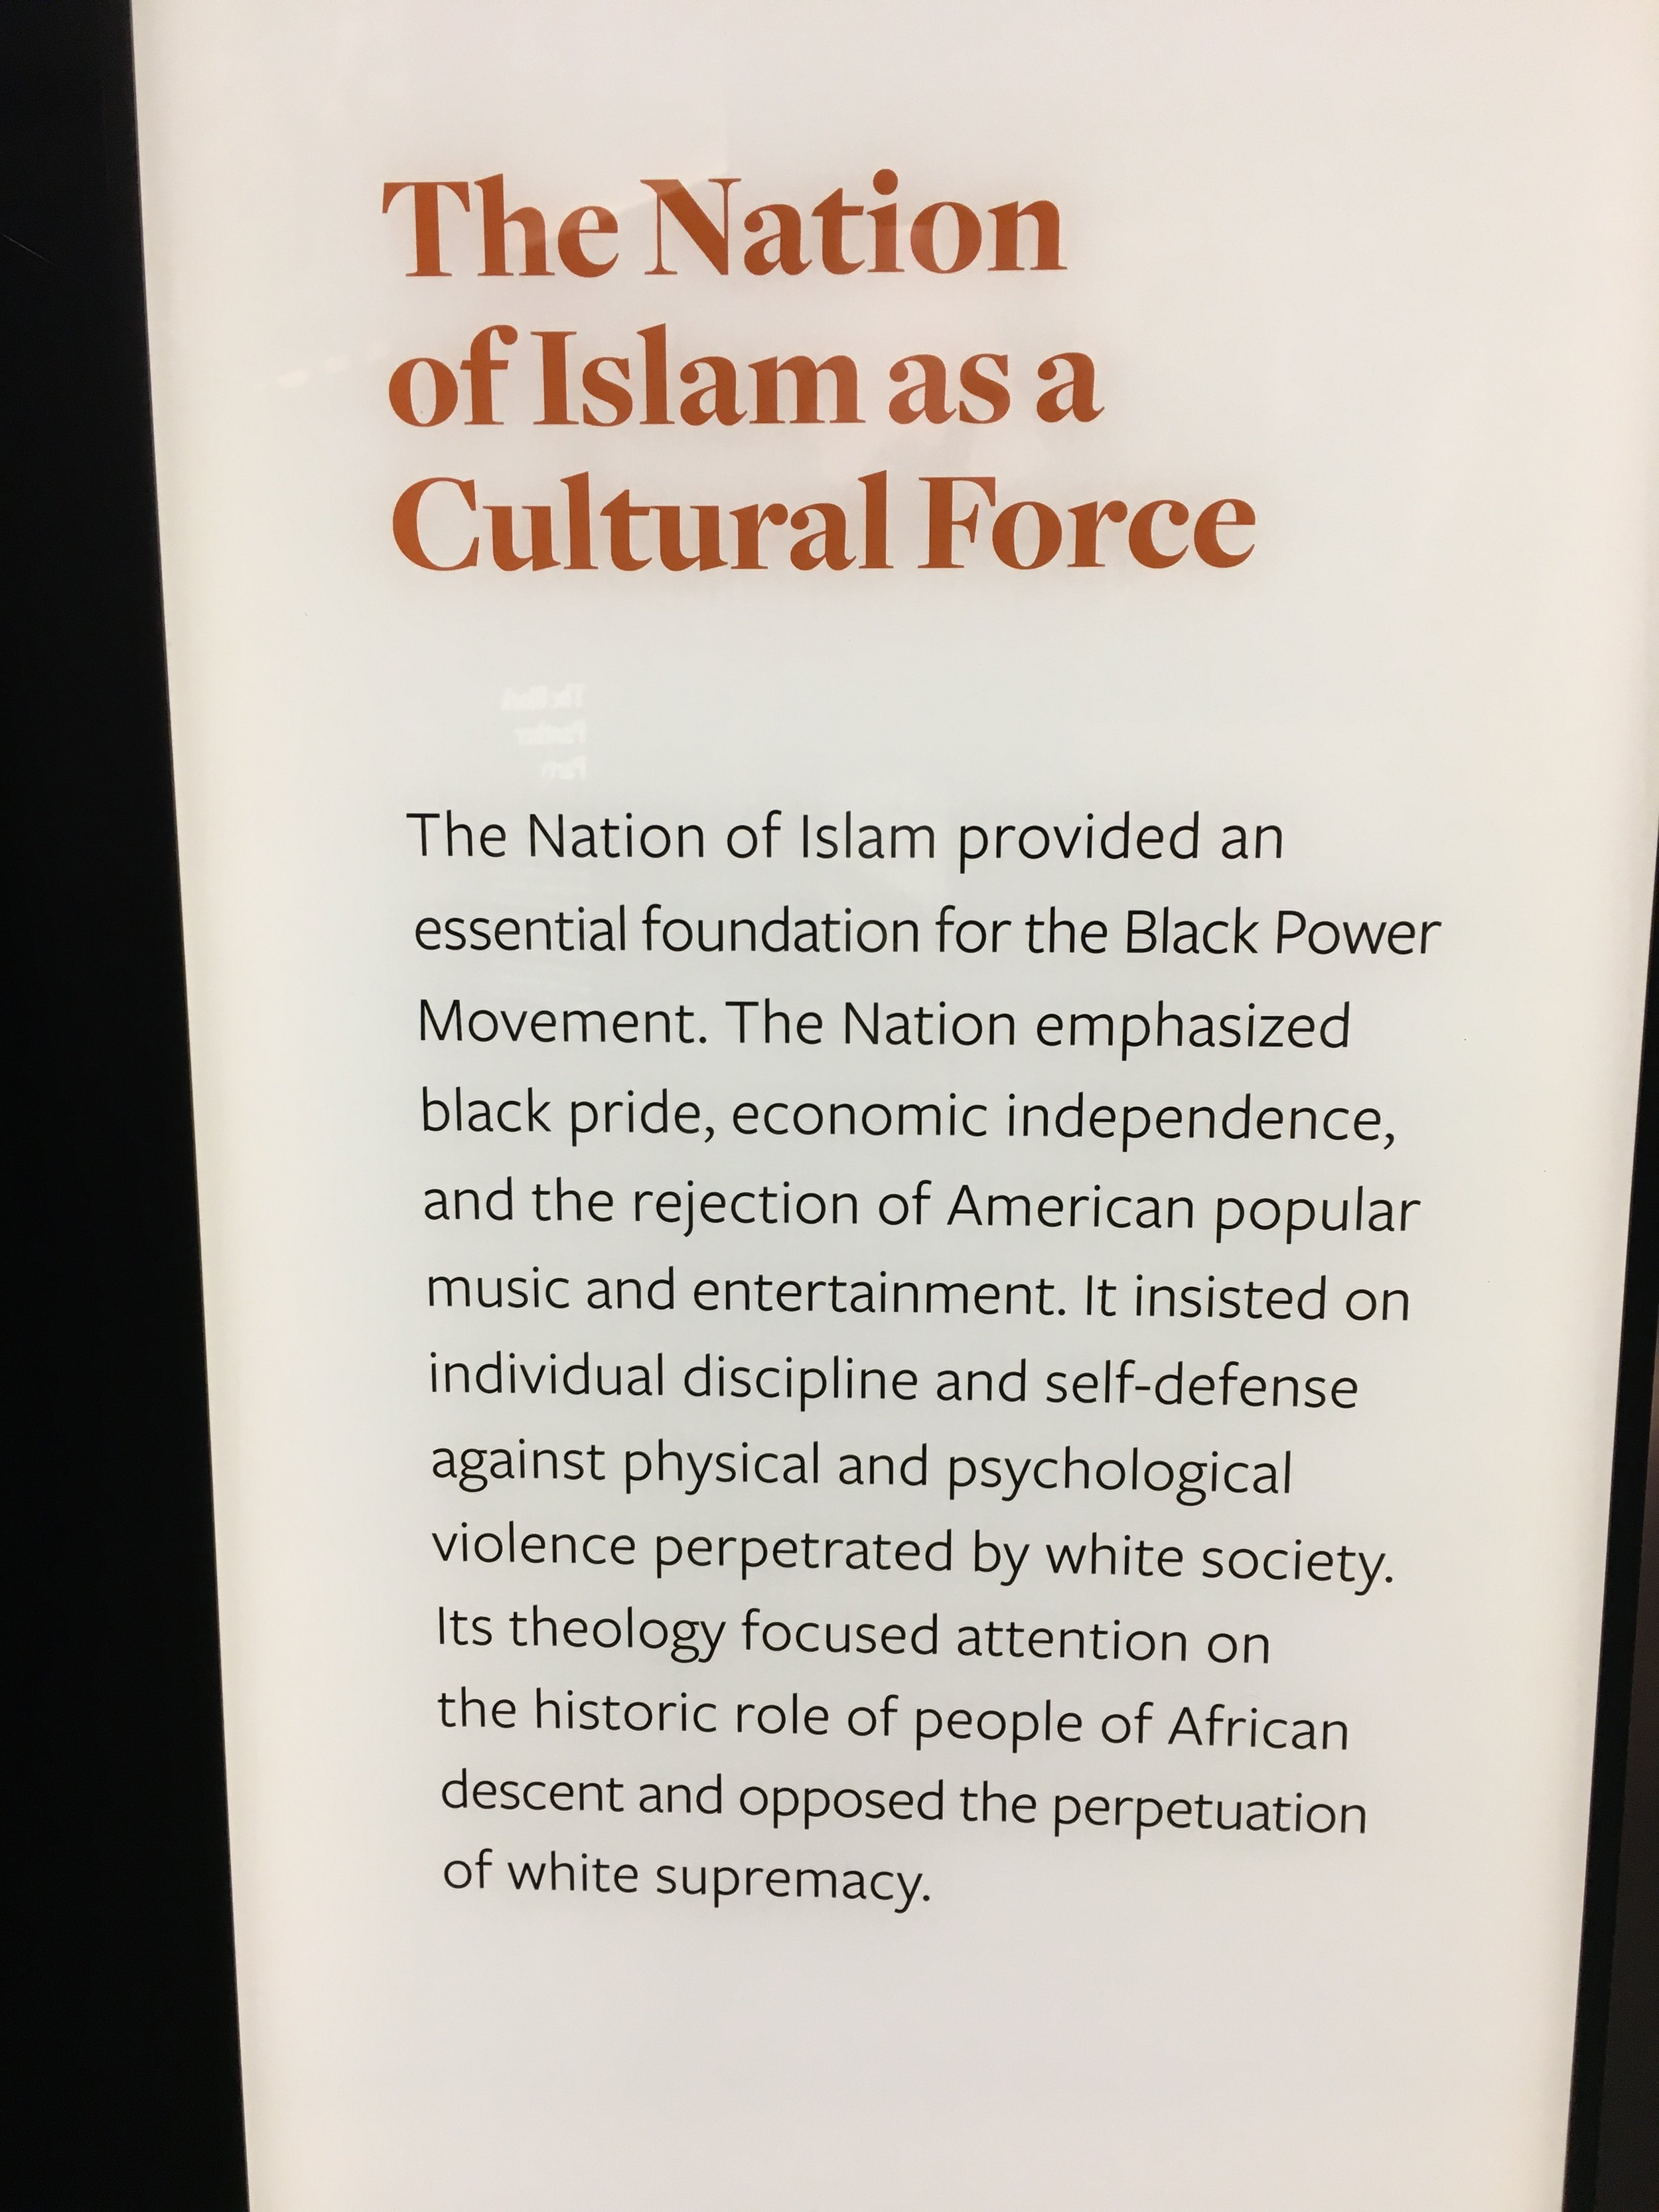 The Nation of Islam Meets Civil Rights